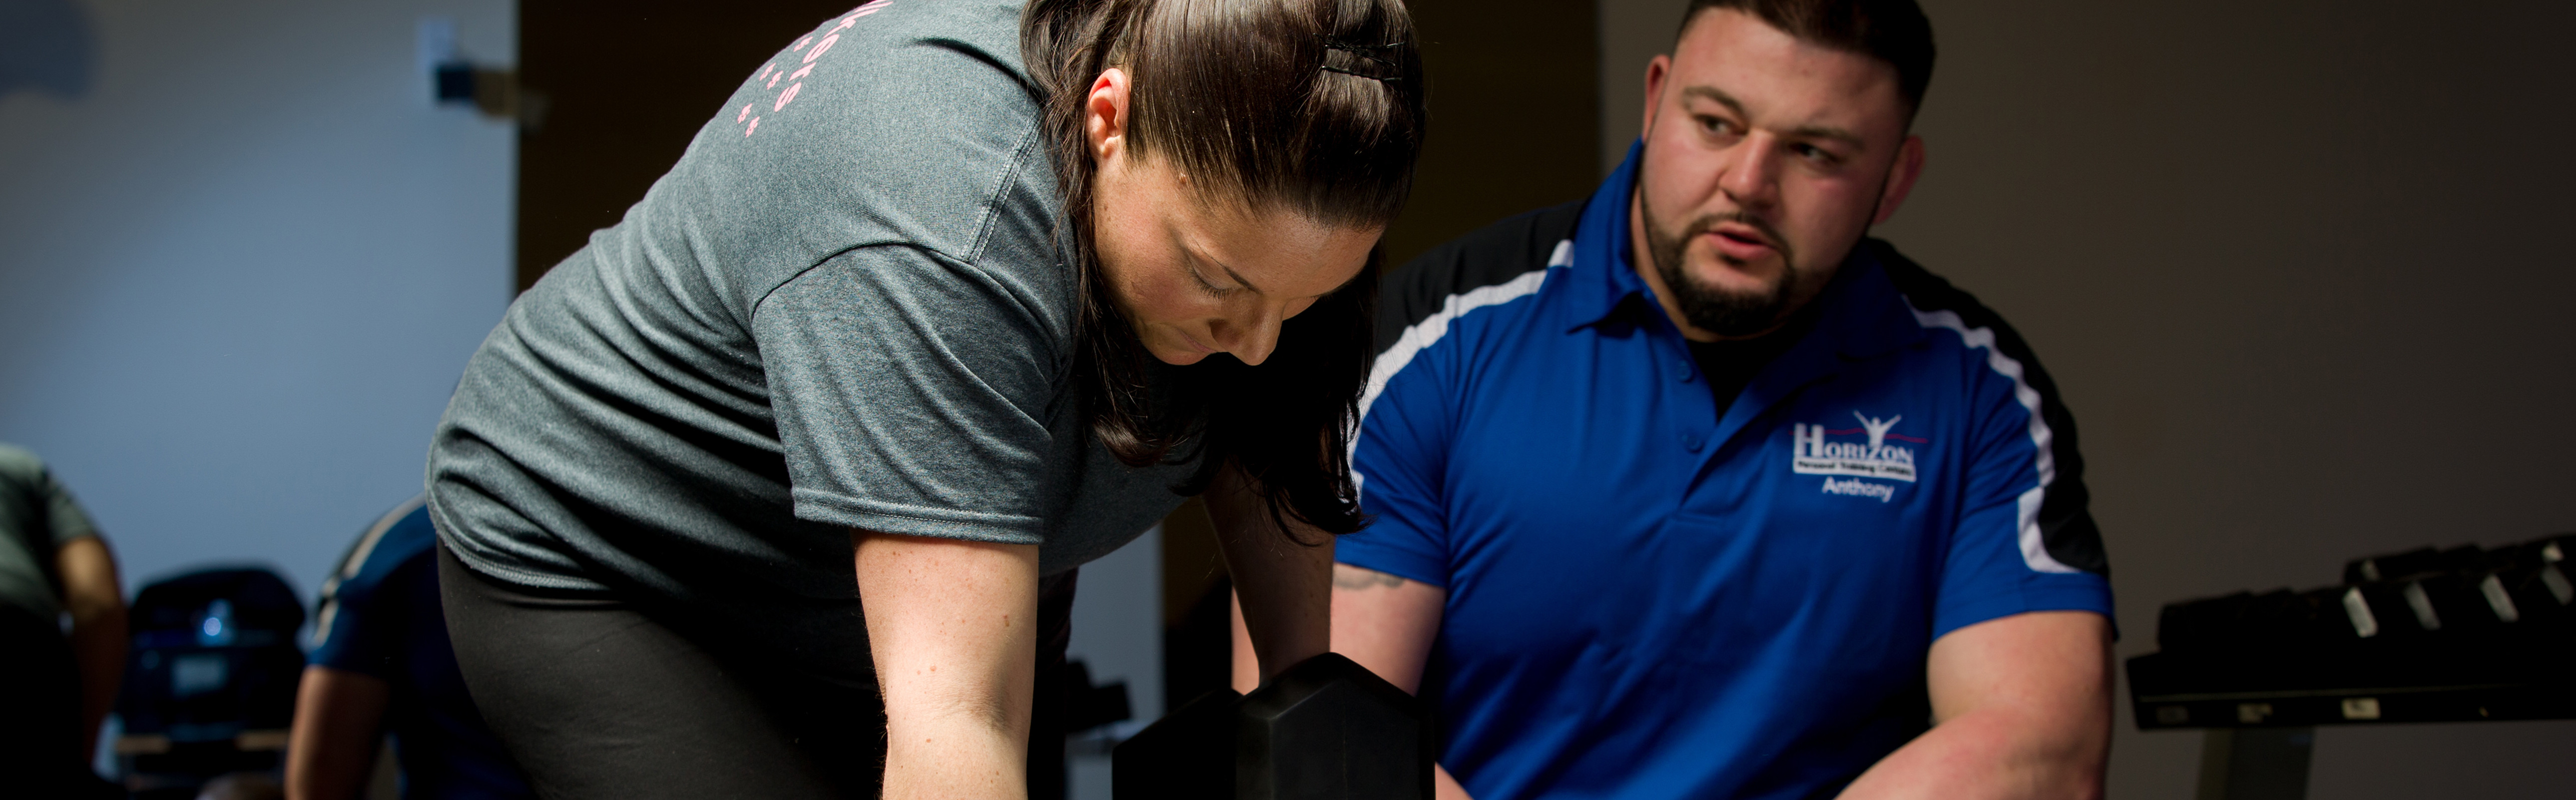 Senior and Elderly Personal Training in CT